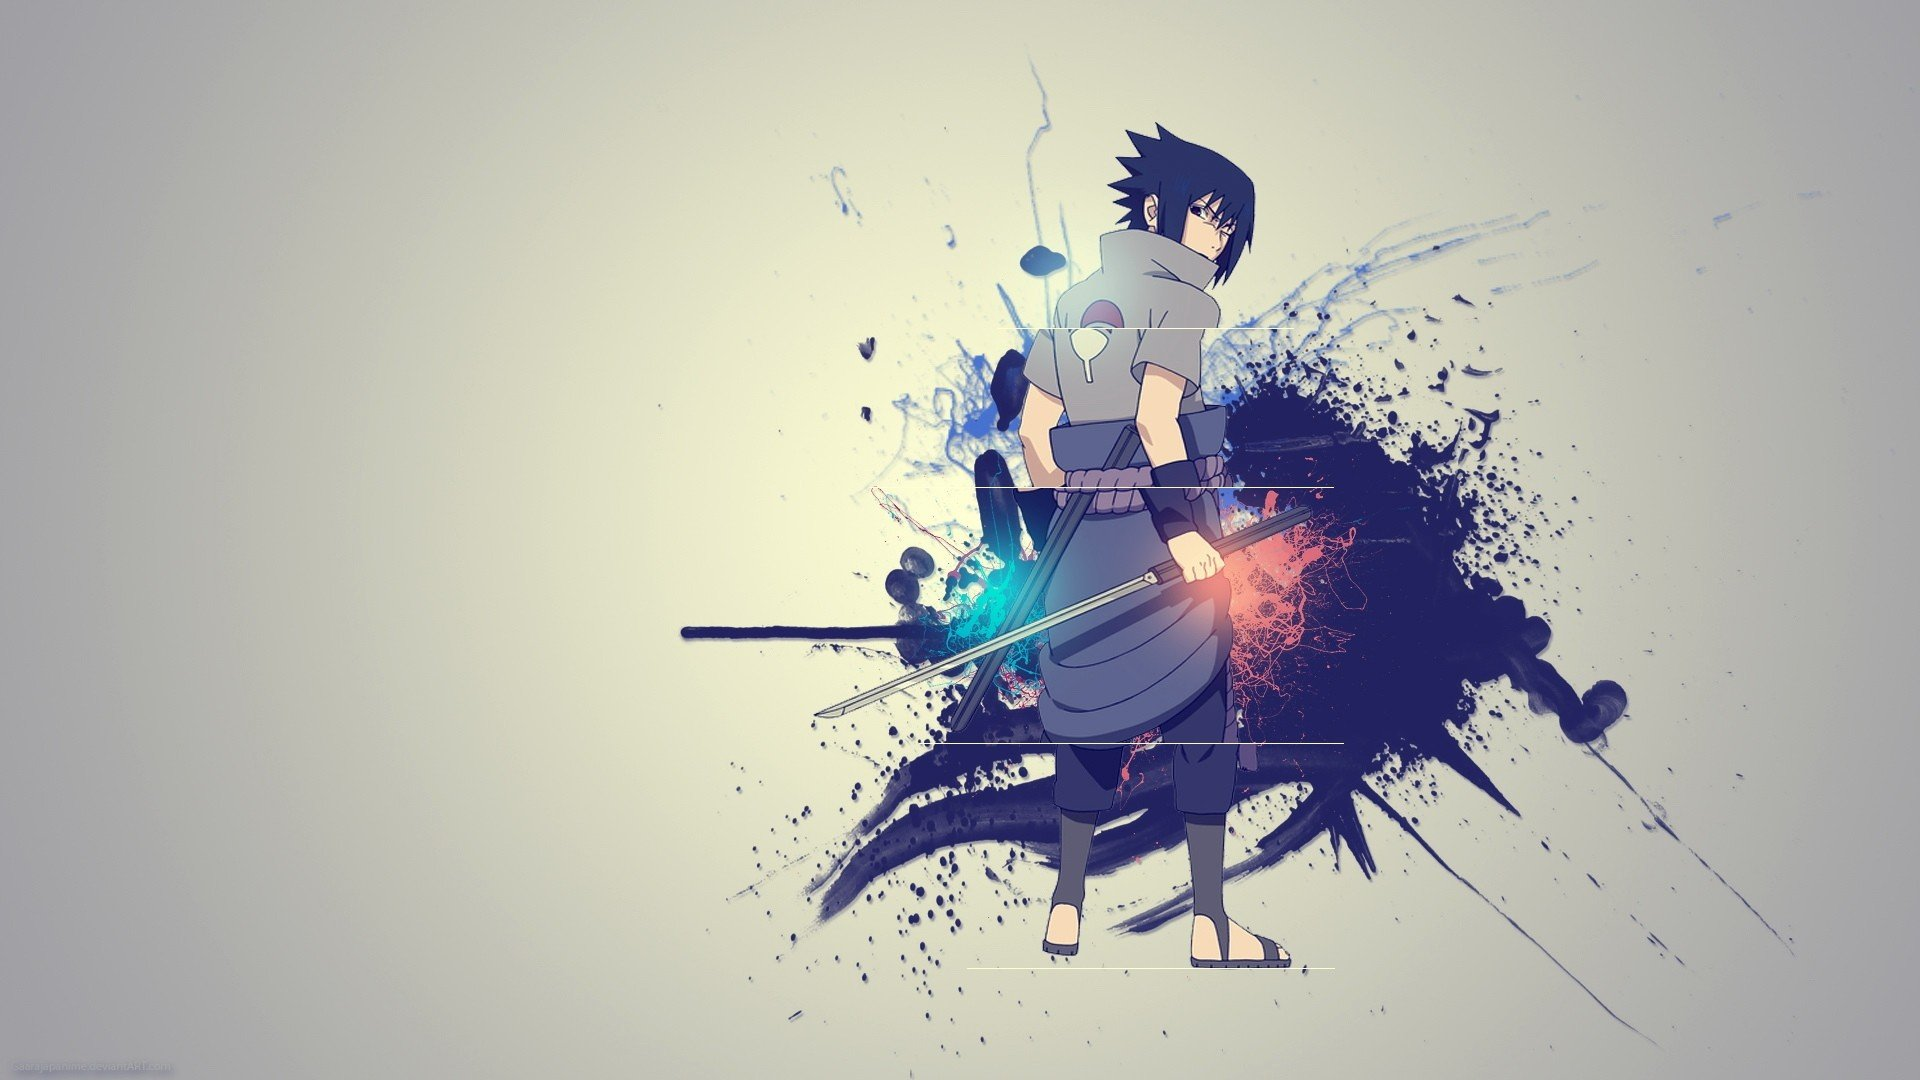 76 Sasuke And Naruto Wallpaper On Wallpapersafari